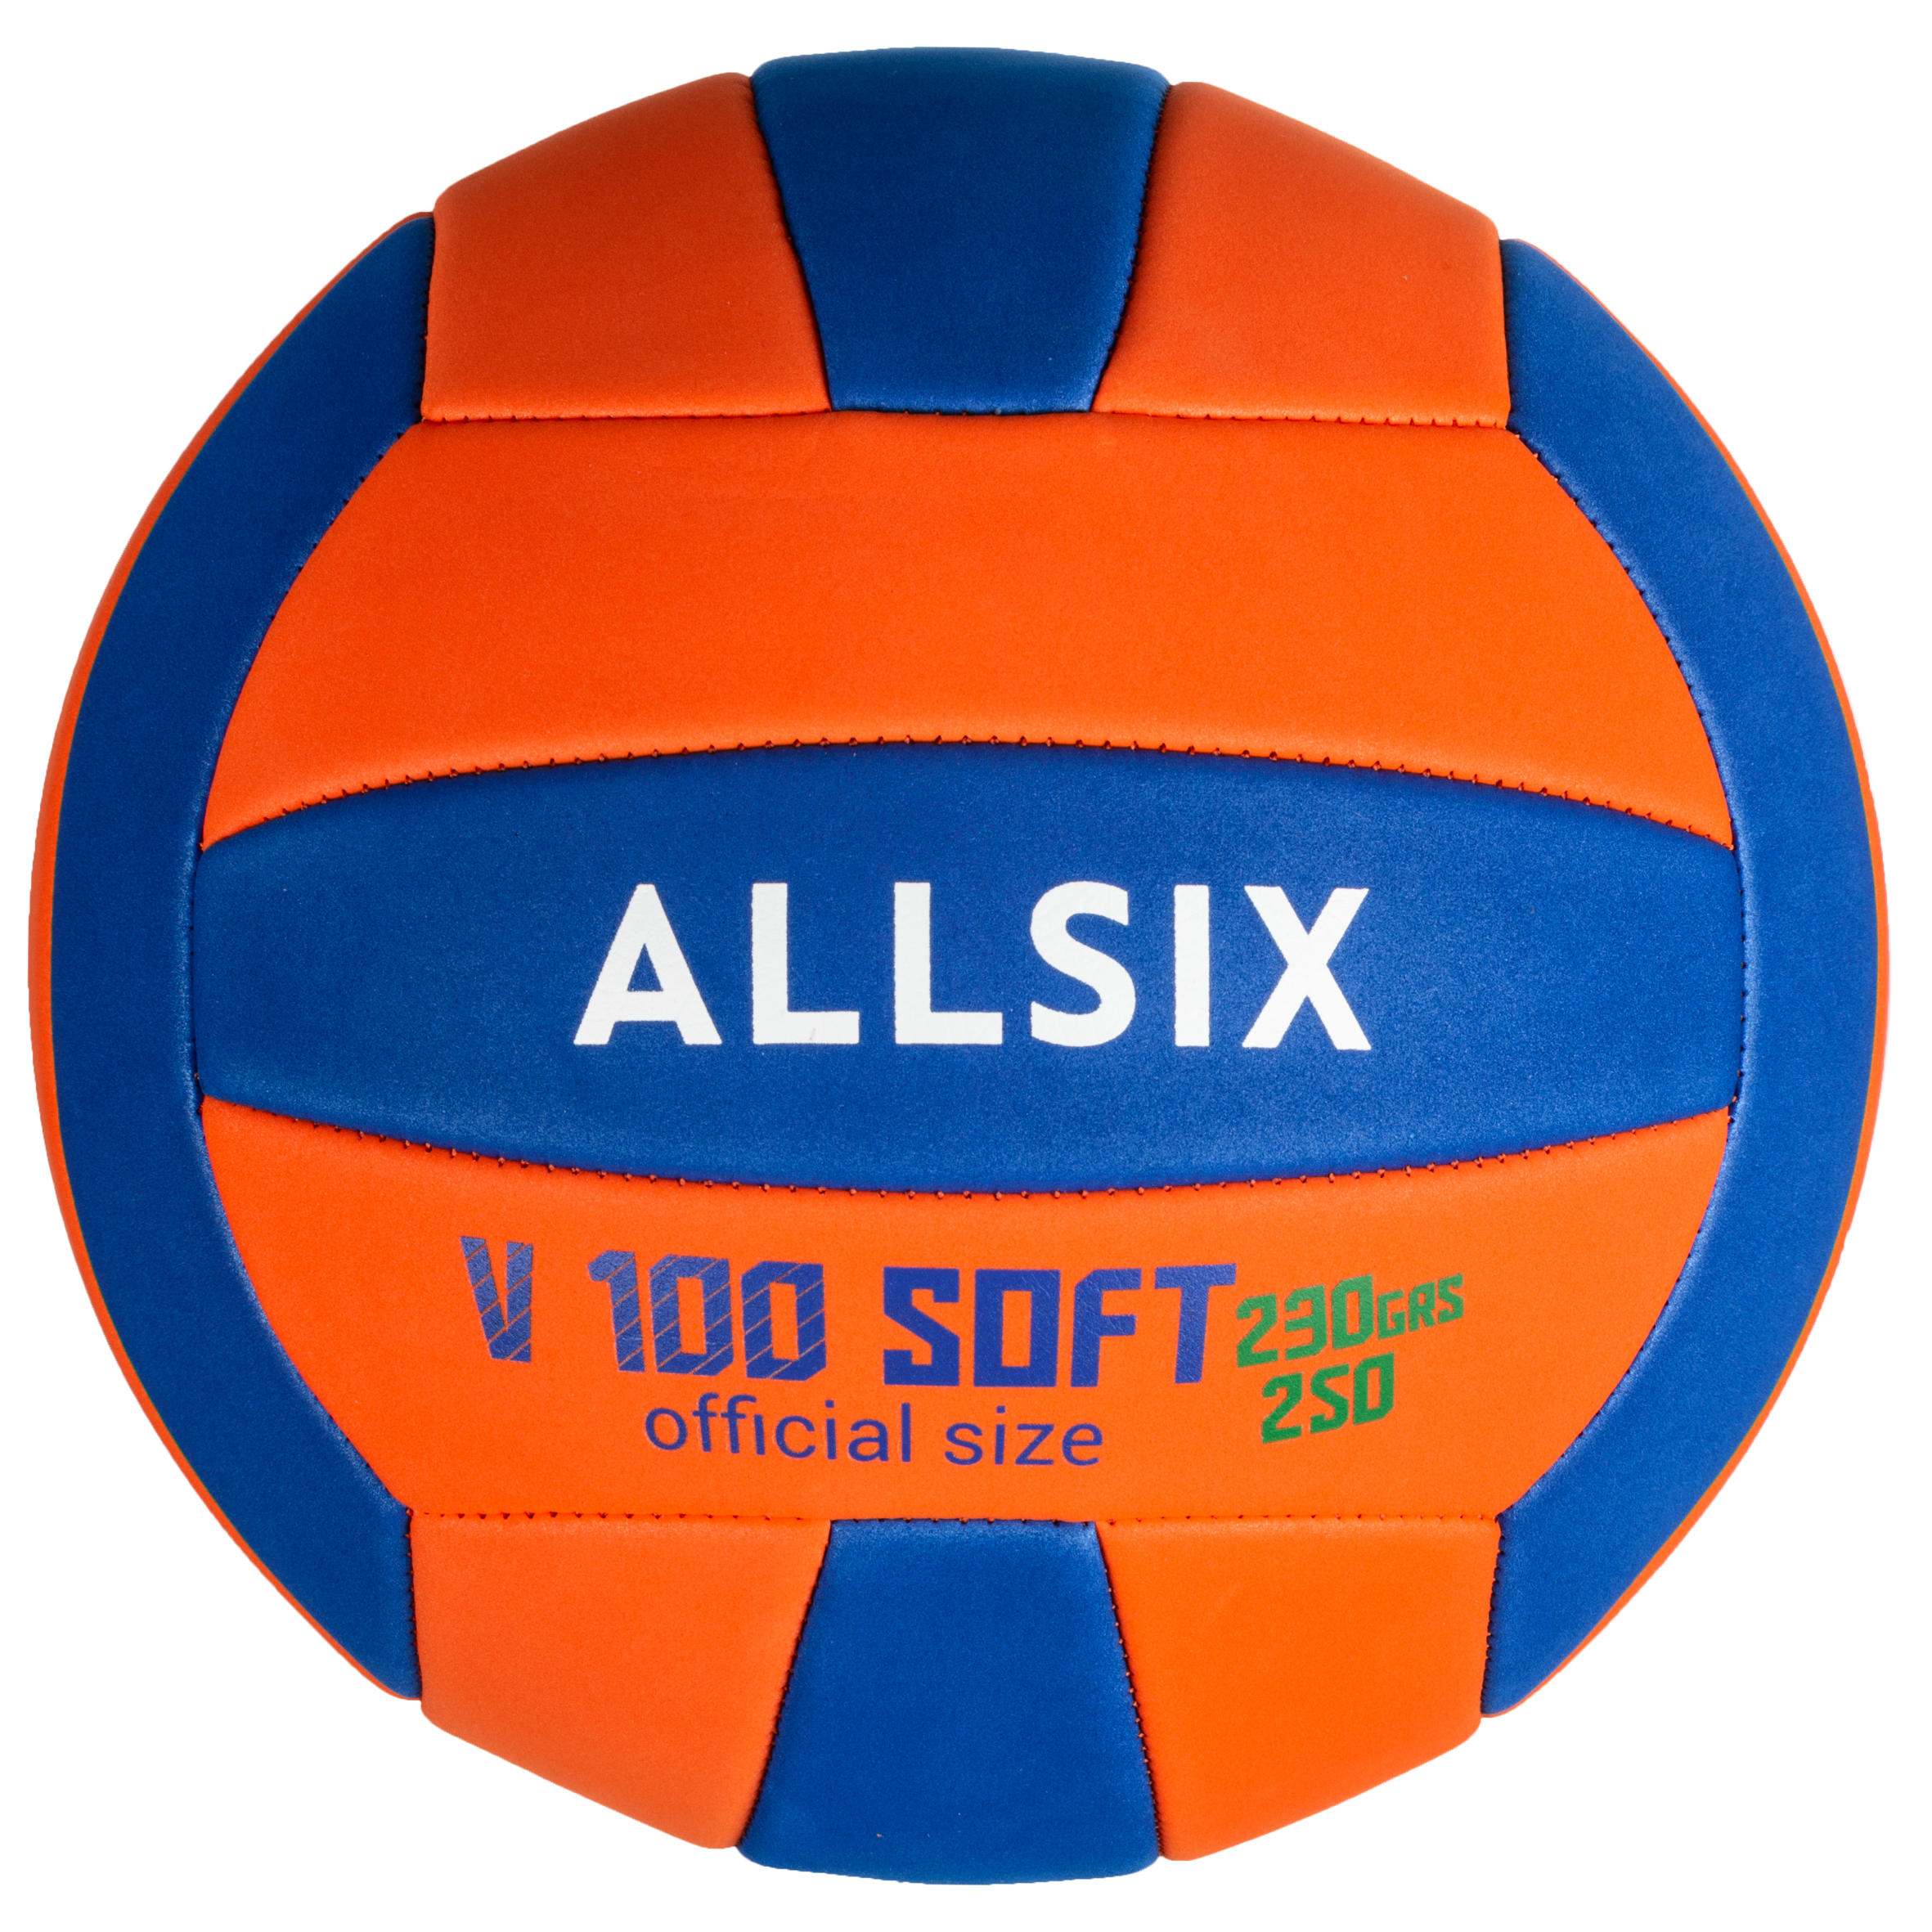 Minge volei V100 SOFT 230 imagine